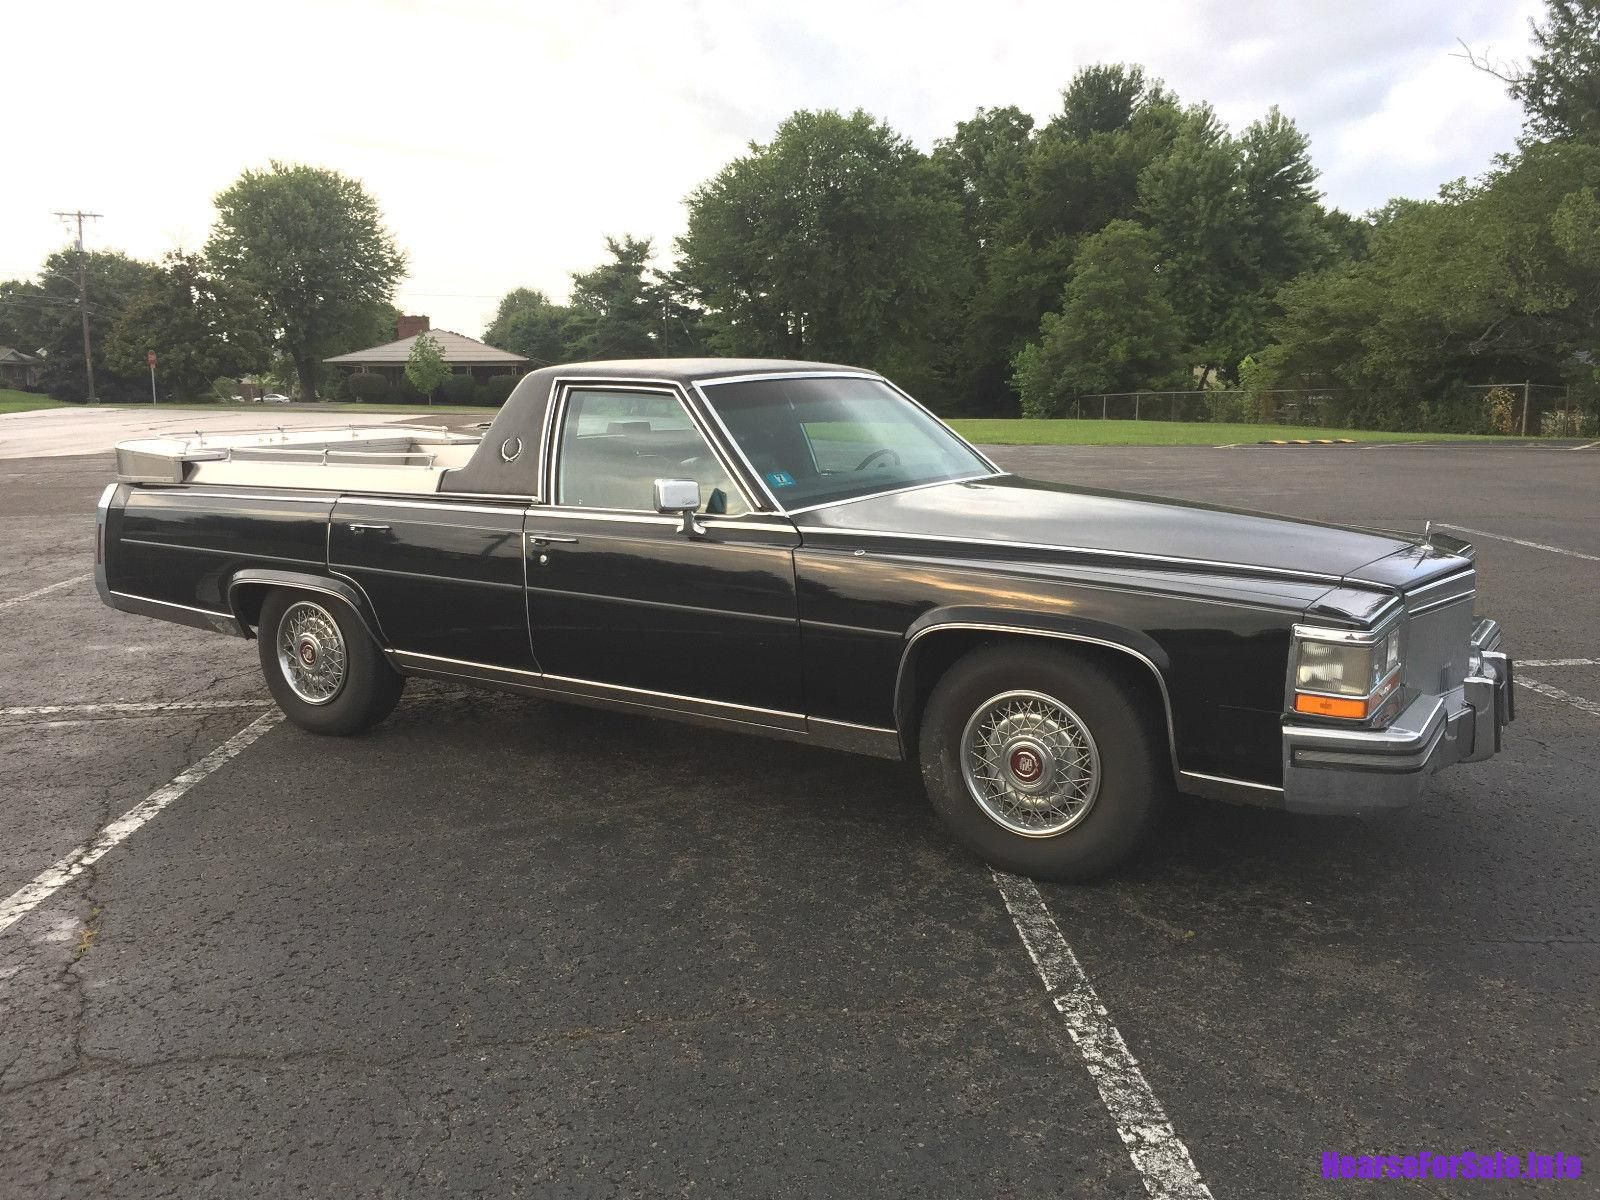 1989 Cadillac Fleetwood Brougham Funeral Flower Car Hearse Hearses